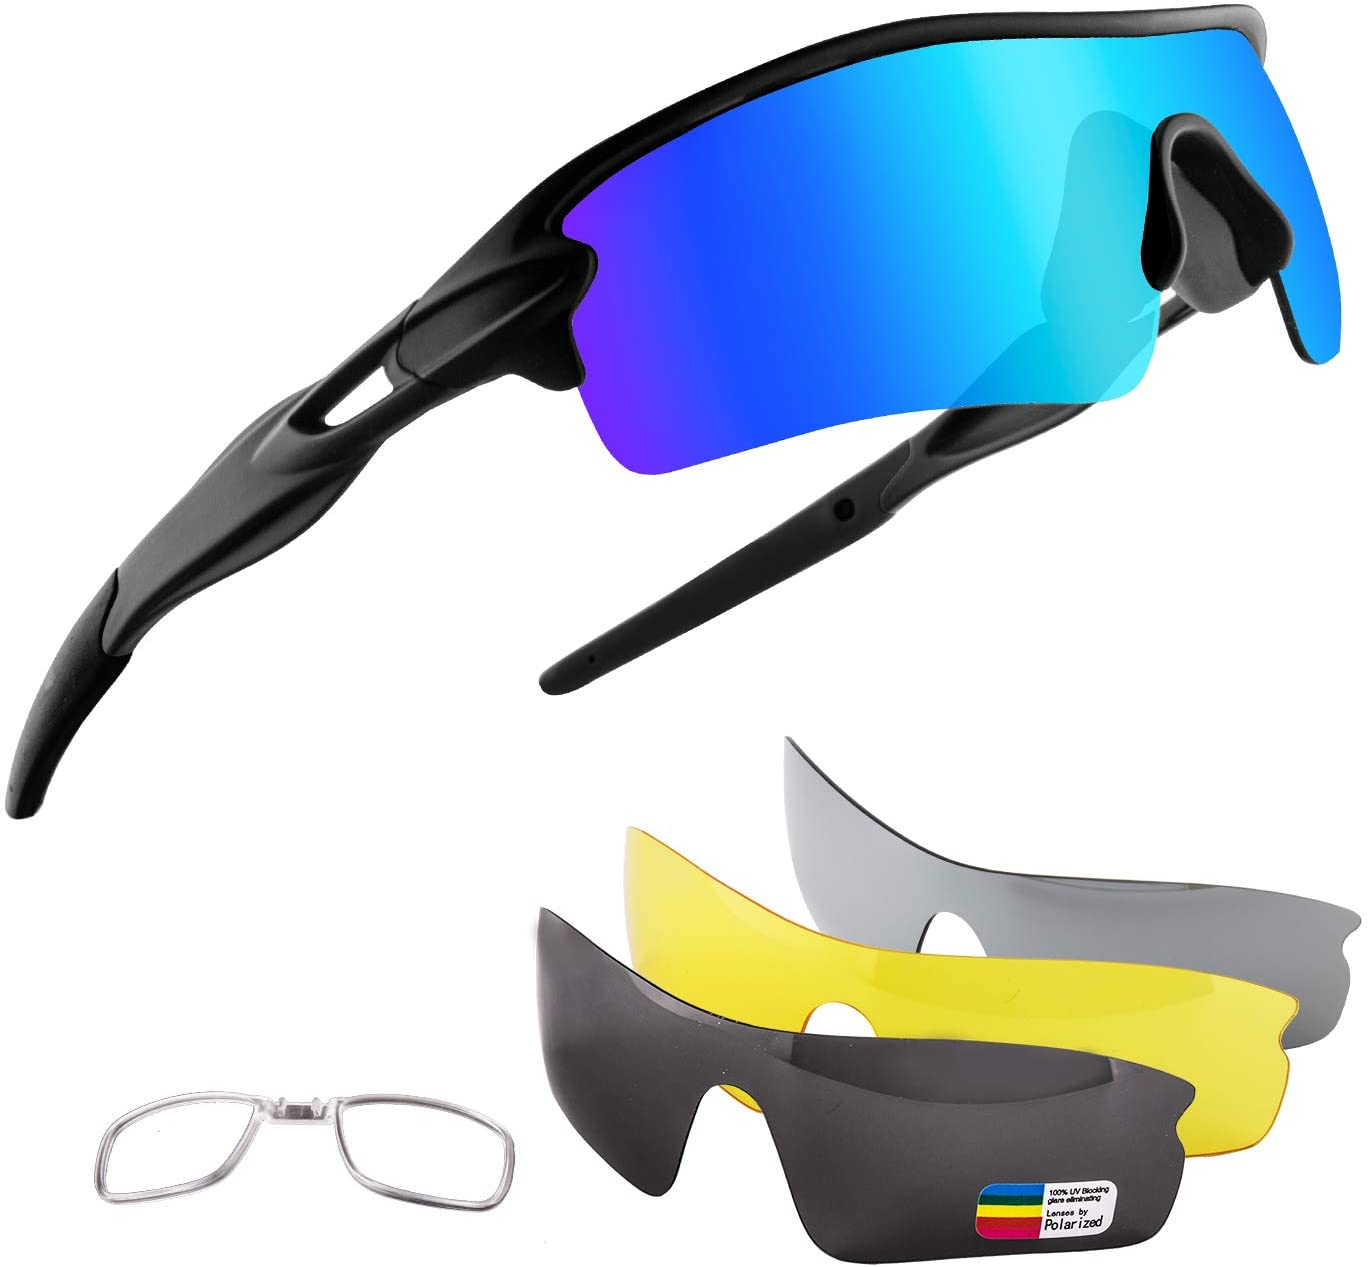 Xiyalai Polarized Sports Sunglasses with 5 Interchangeable Lenses,Mens Womens Cycling Glasses, Running